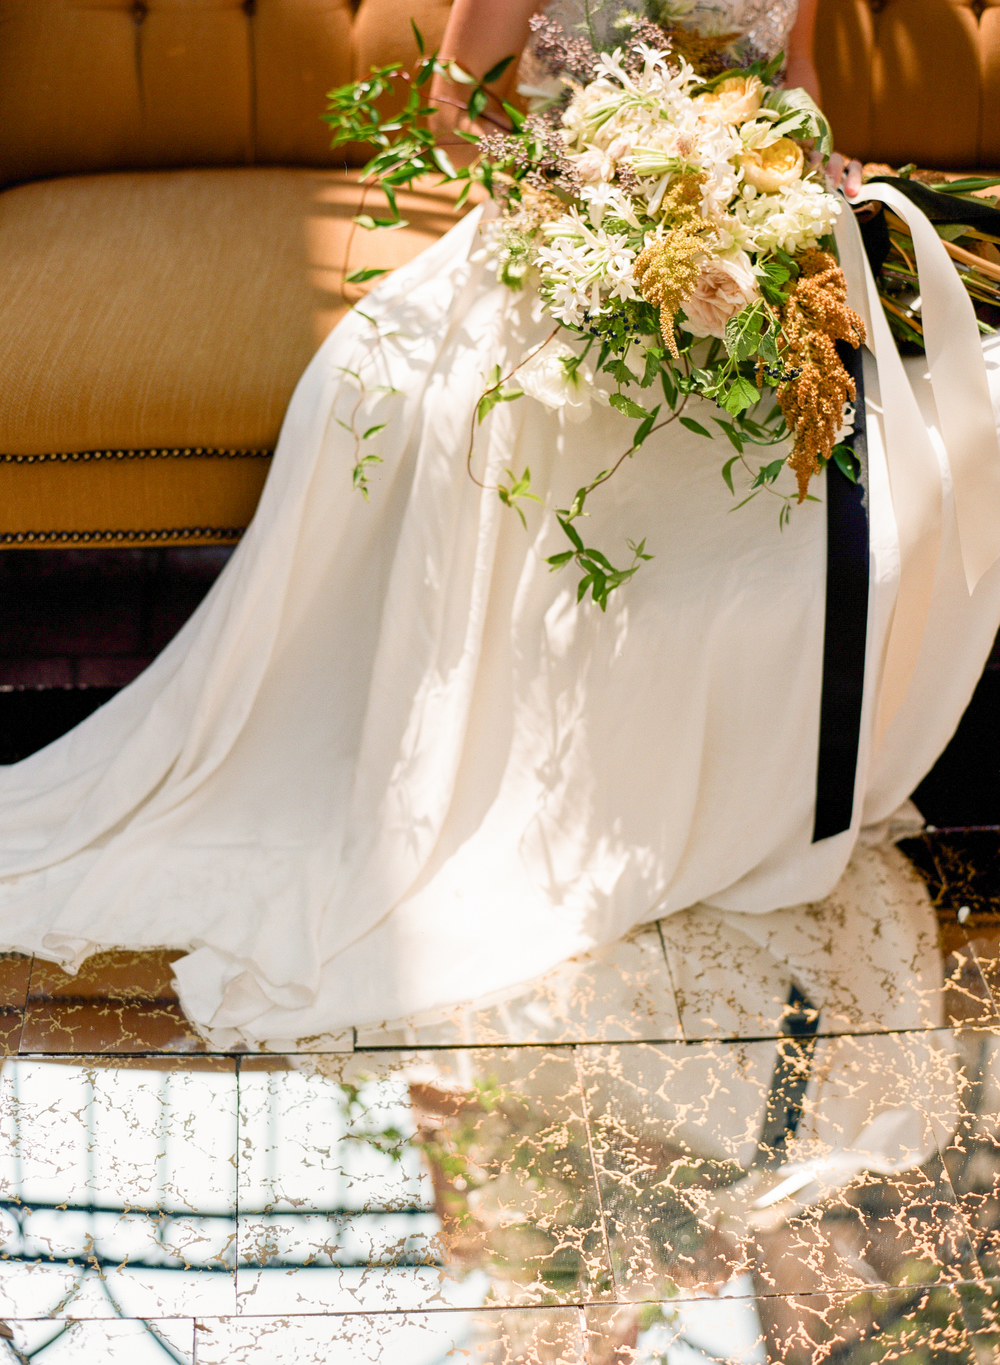 Olivia-Griffin-trendy-bride-magazine-willow-florals-sarah-seven-gwen-ivory-and-beau-bridal-boutique-savannah-wedding-dresses-savannah-bridal-boutique-savannah-wedding-savannah-bridal-gowns-savannah-wedding-planner-georgia-bridal-boutique-14.JPG